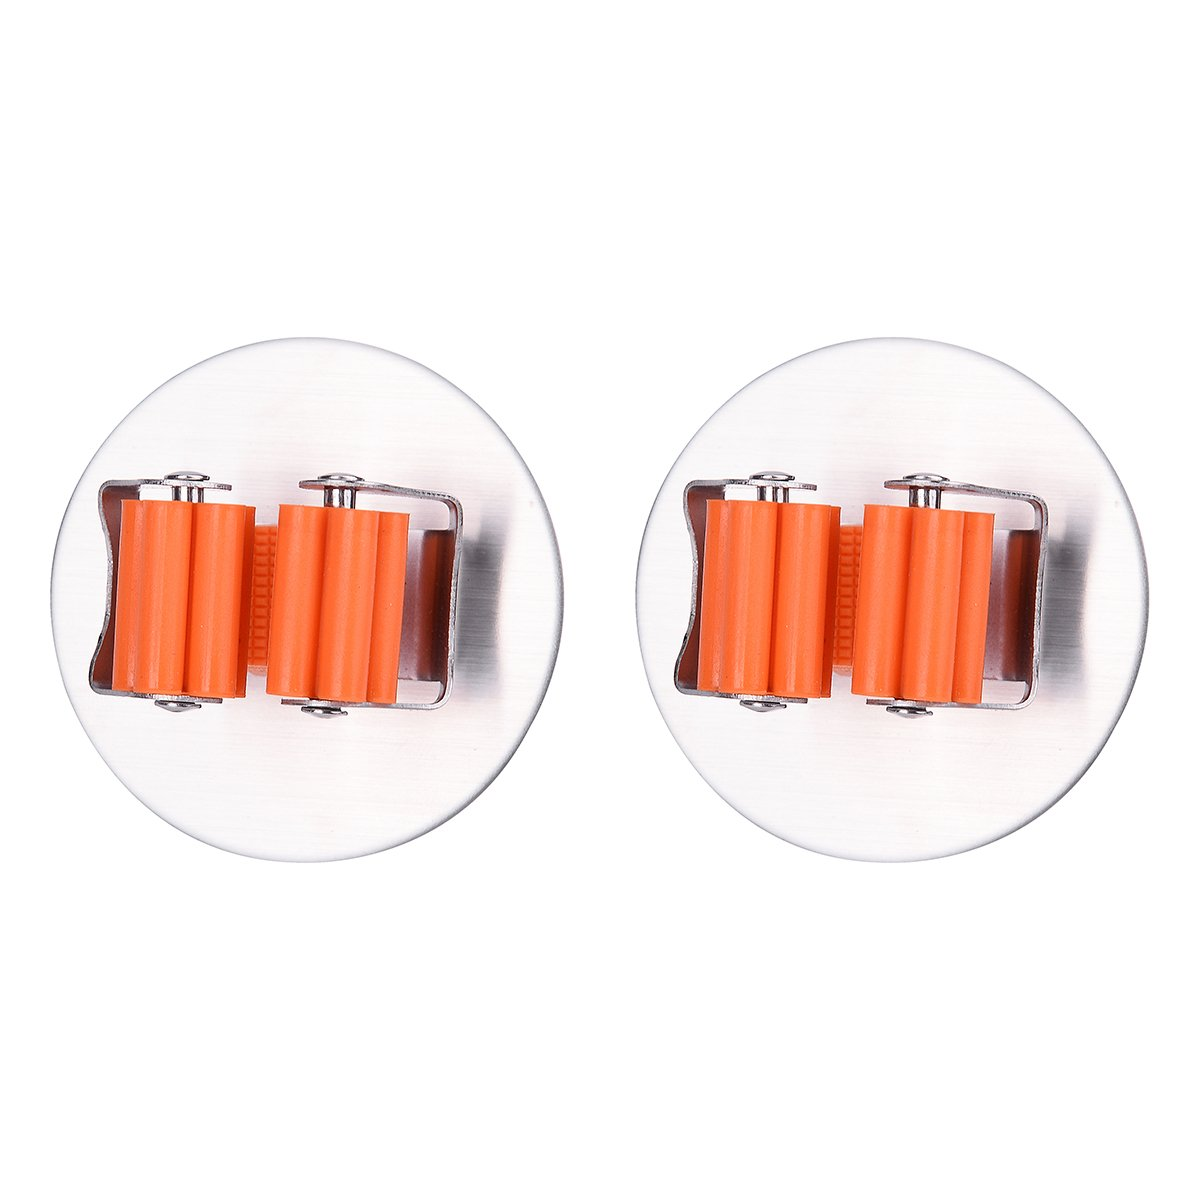 Mop Broom Holder Organizer, 2 Pcs 3M Self Adhesive Wall Mounted Mop Hooks Broom Hanger Holder with Spring Clip Design Bath Mounted Home Tools/ Kitchen Organizer Rack(Round, Orange) Rong Sa